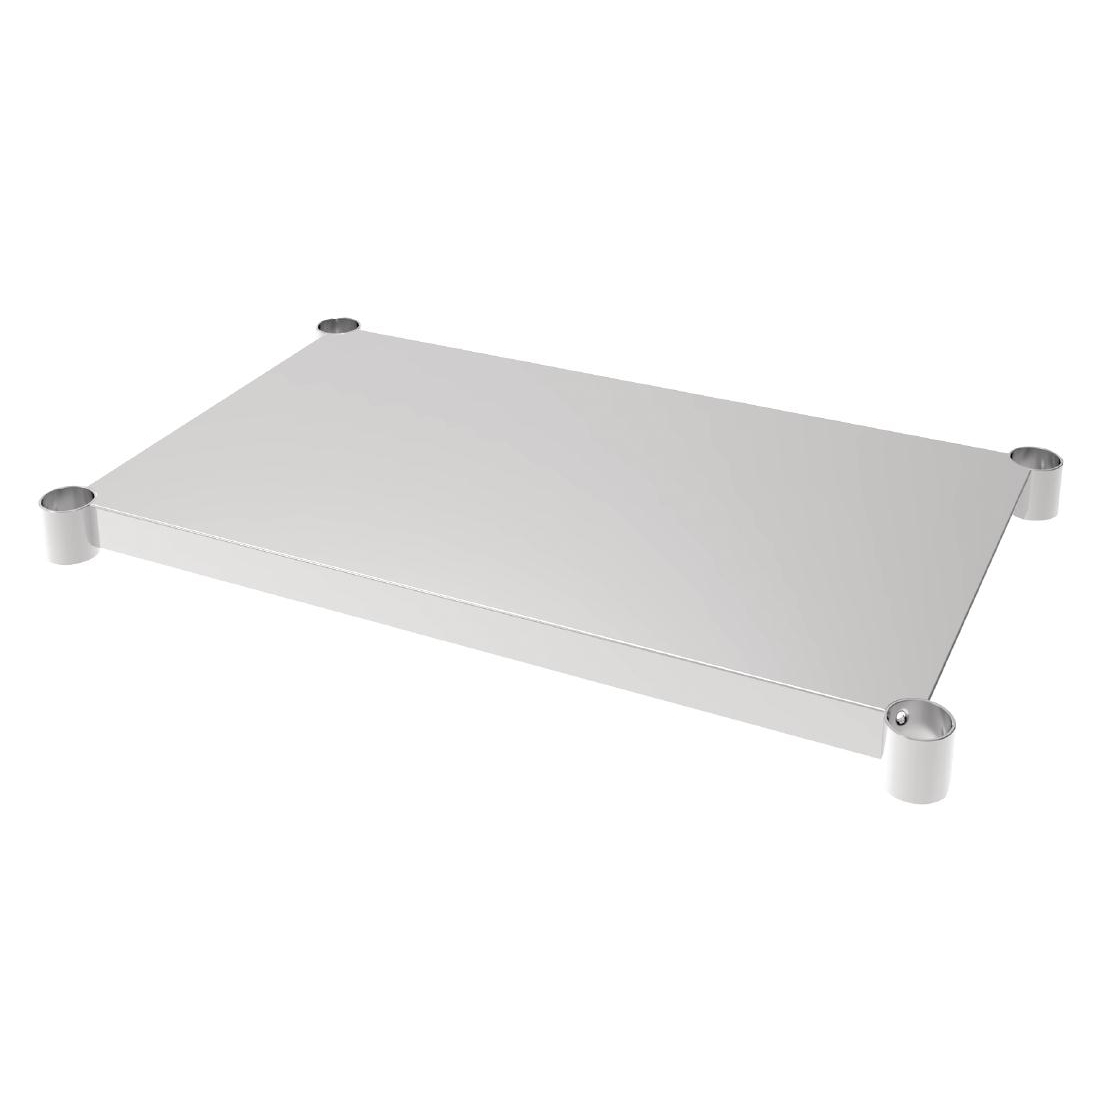 Vogue Stainless Steel Table Shelf 600x900mm